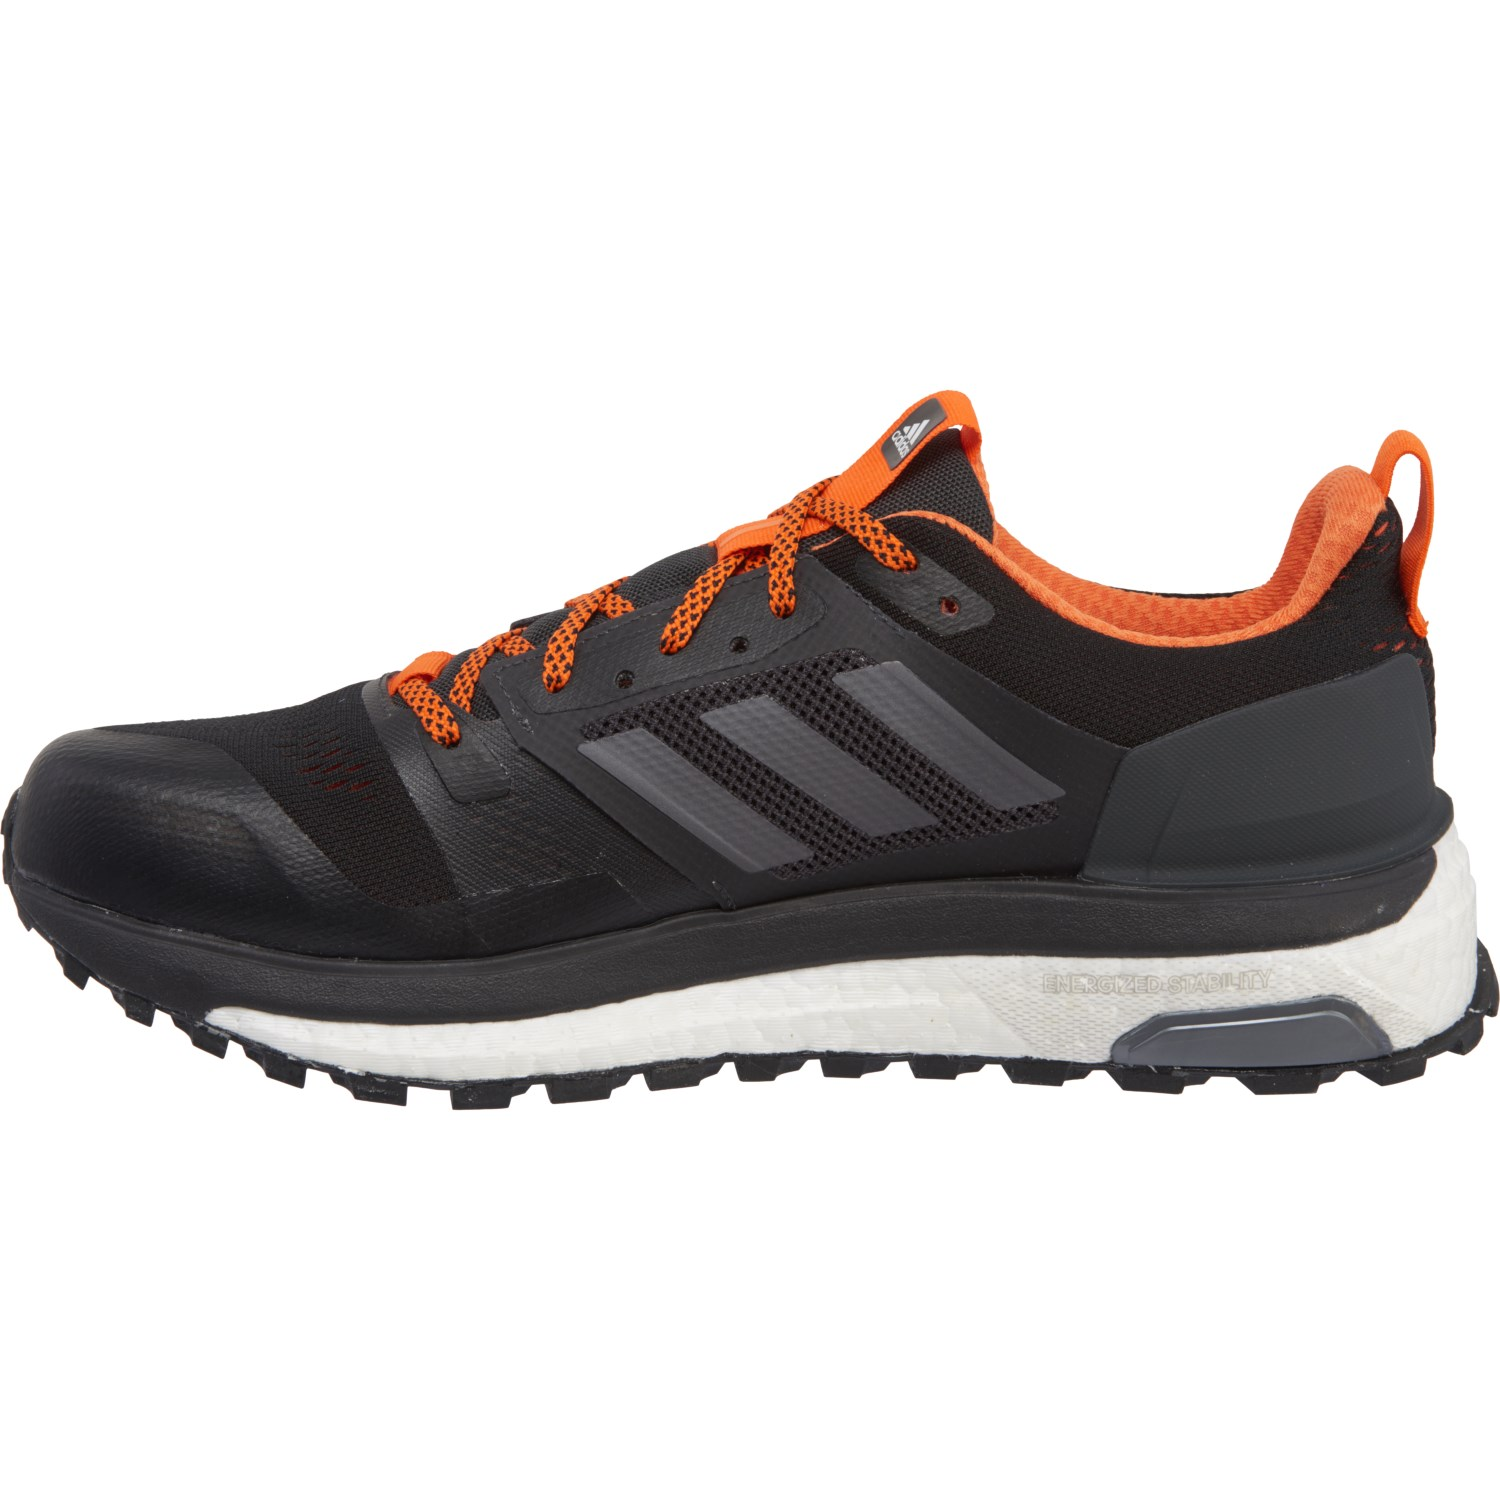 8435dc57f1fc6 adidas Supernova Trail Running Shoes (For Men) - Save 48%